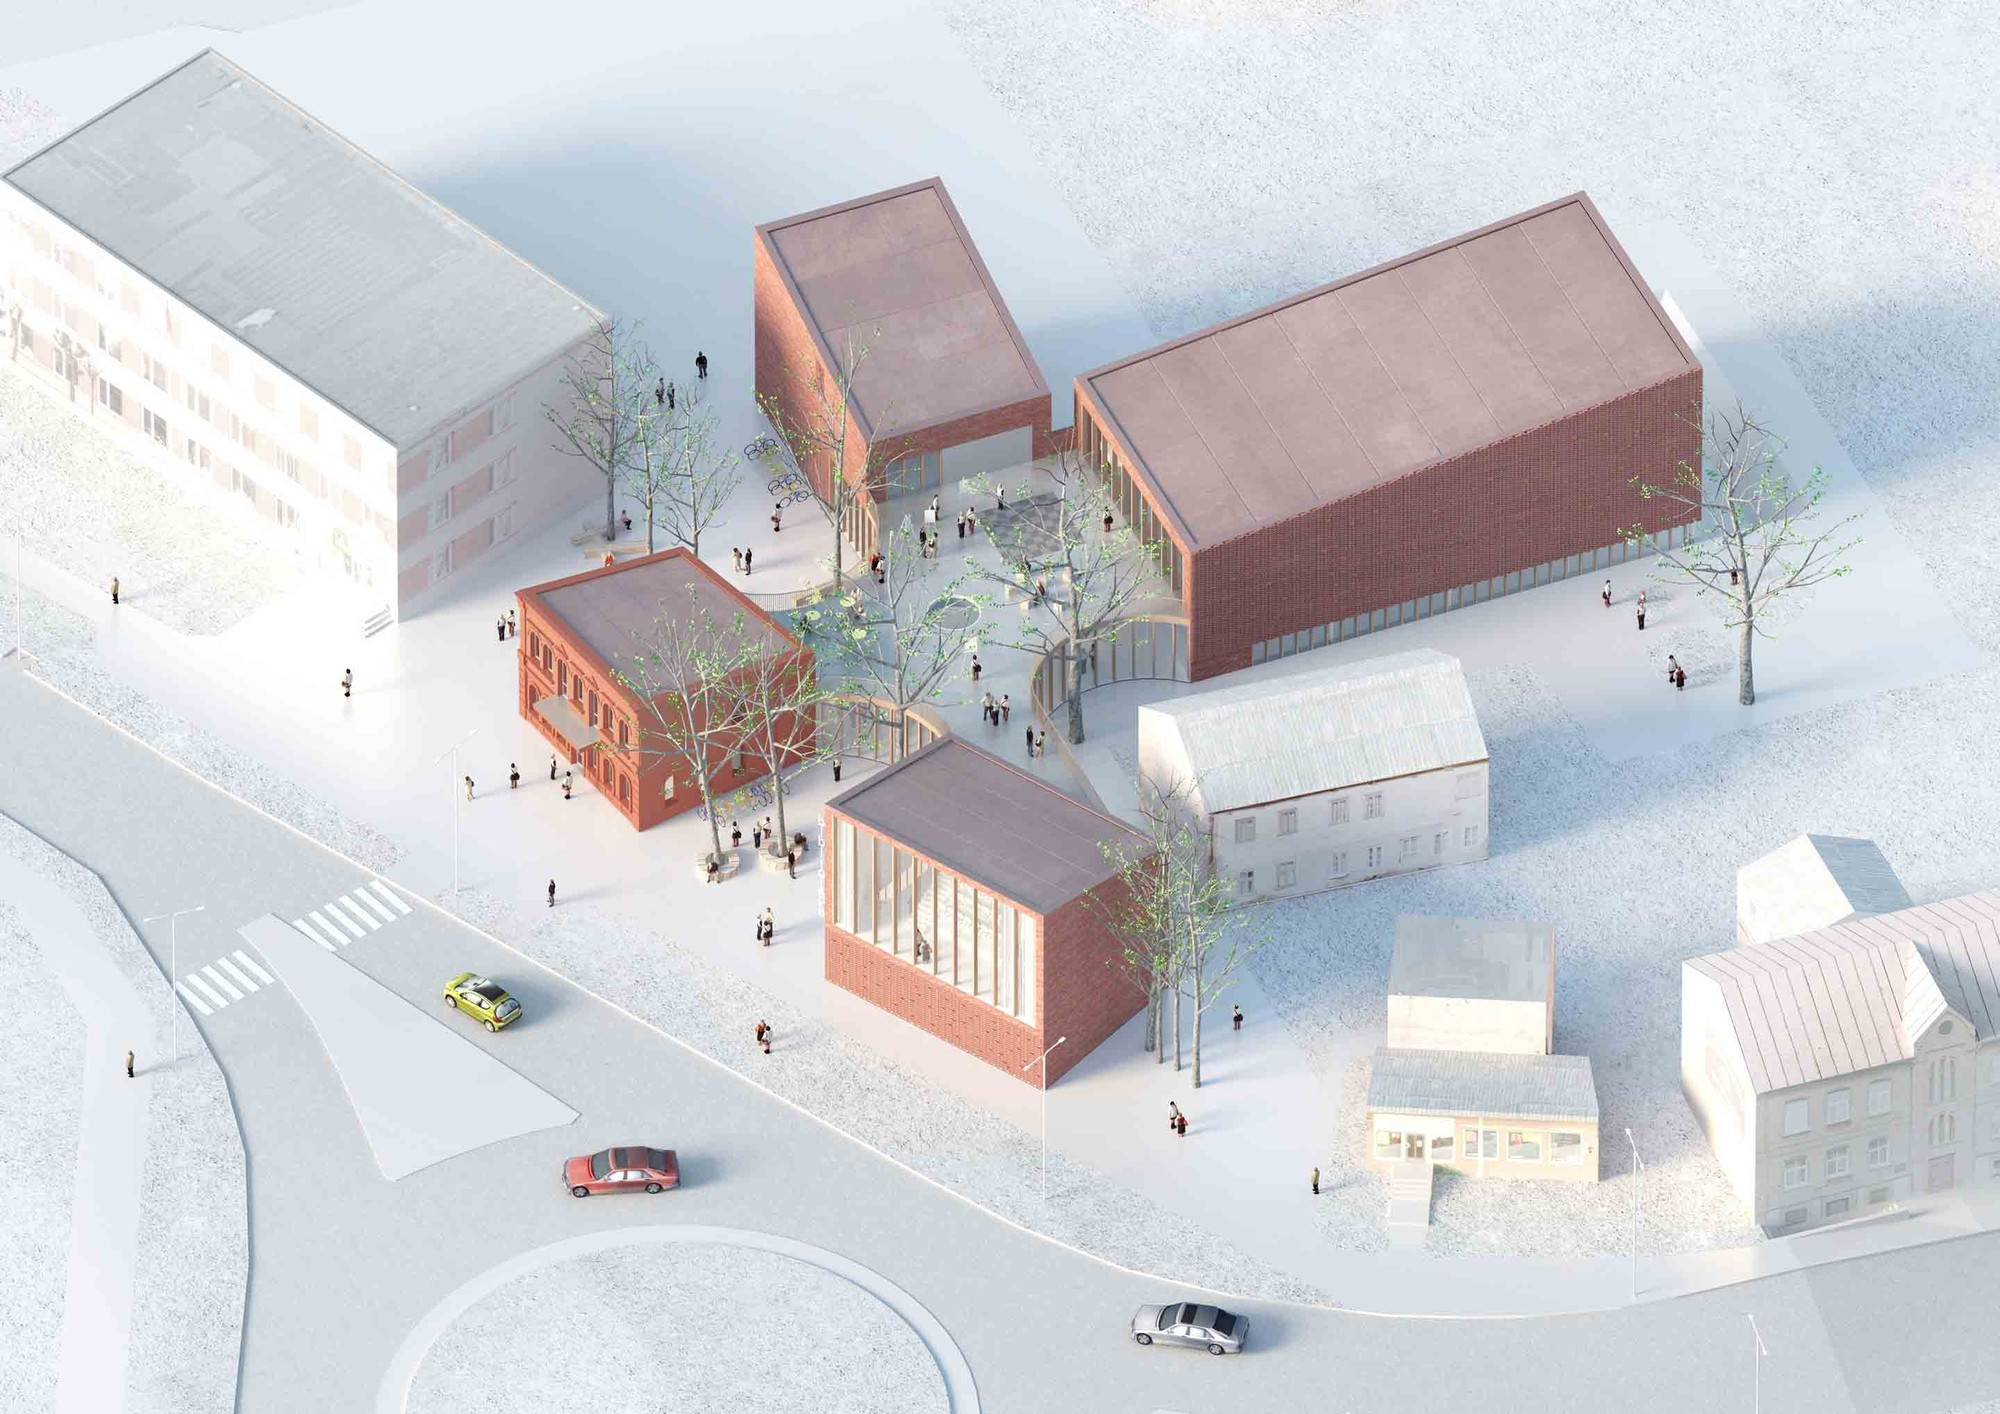 Library building in bauska winning proposal a2sm for Is architecture